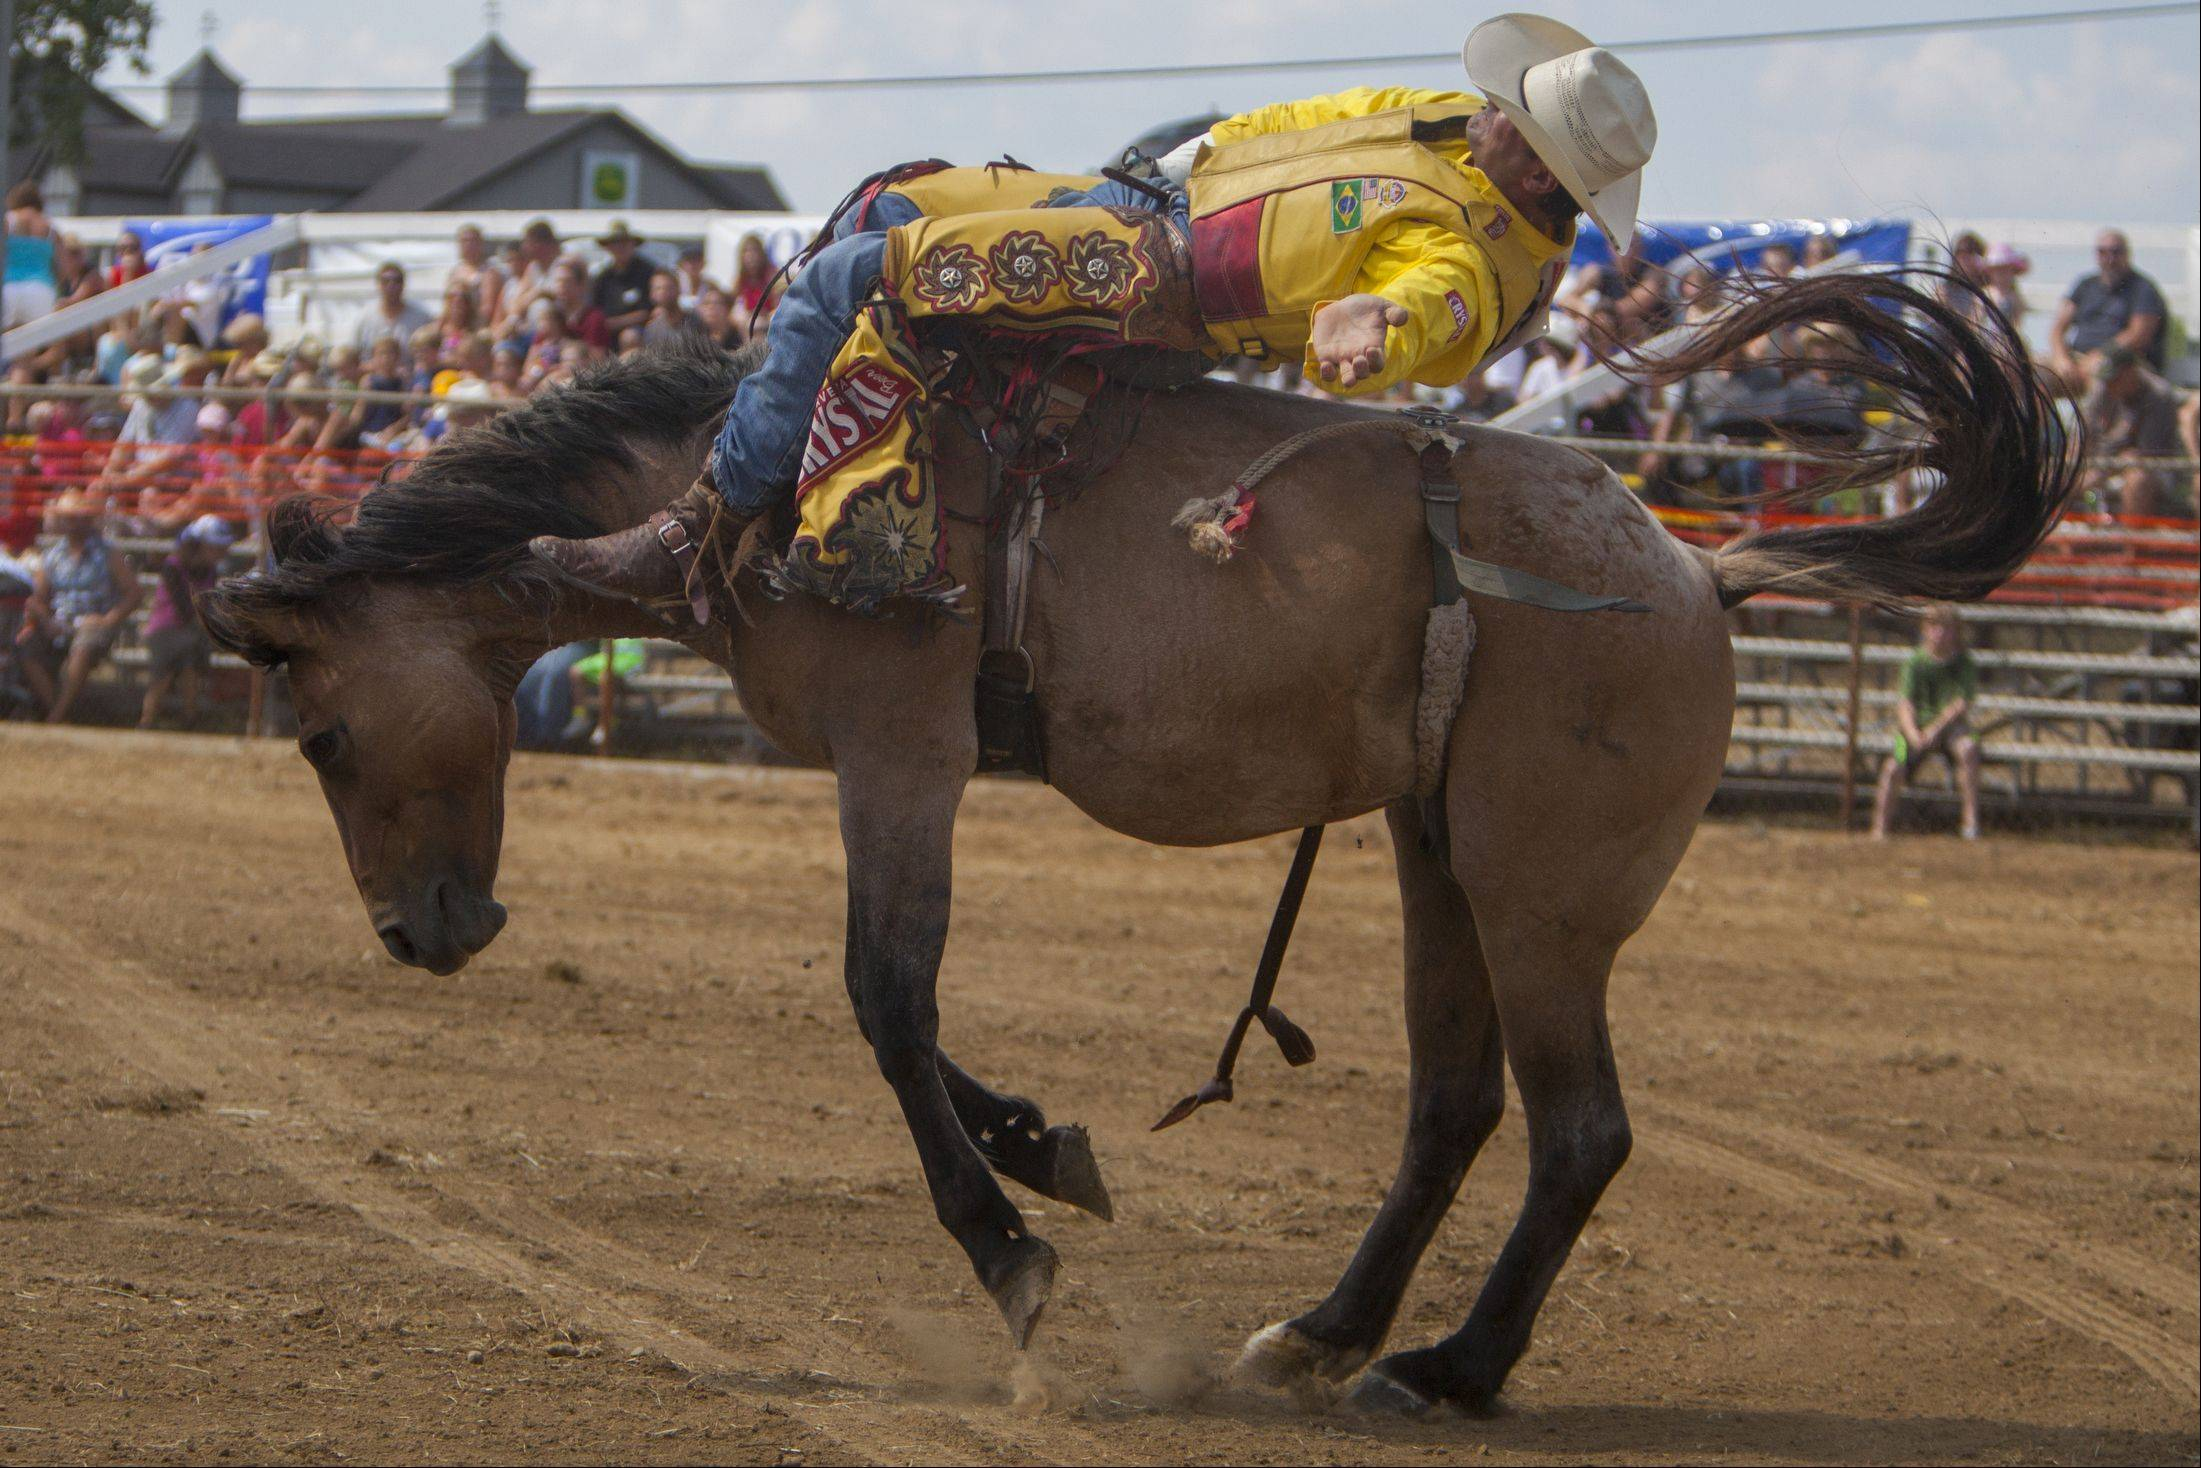 Luiz Morera. a three-time bareback riding champion in his native country of Brazil, holds on as he is bucked in the air during the 49th IPRA Championship Rodeo Sunday in Wauconda.